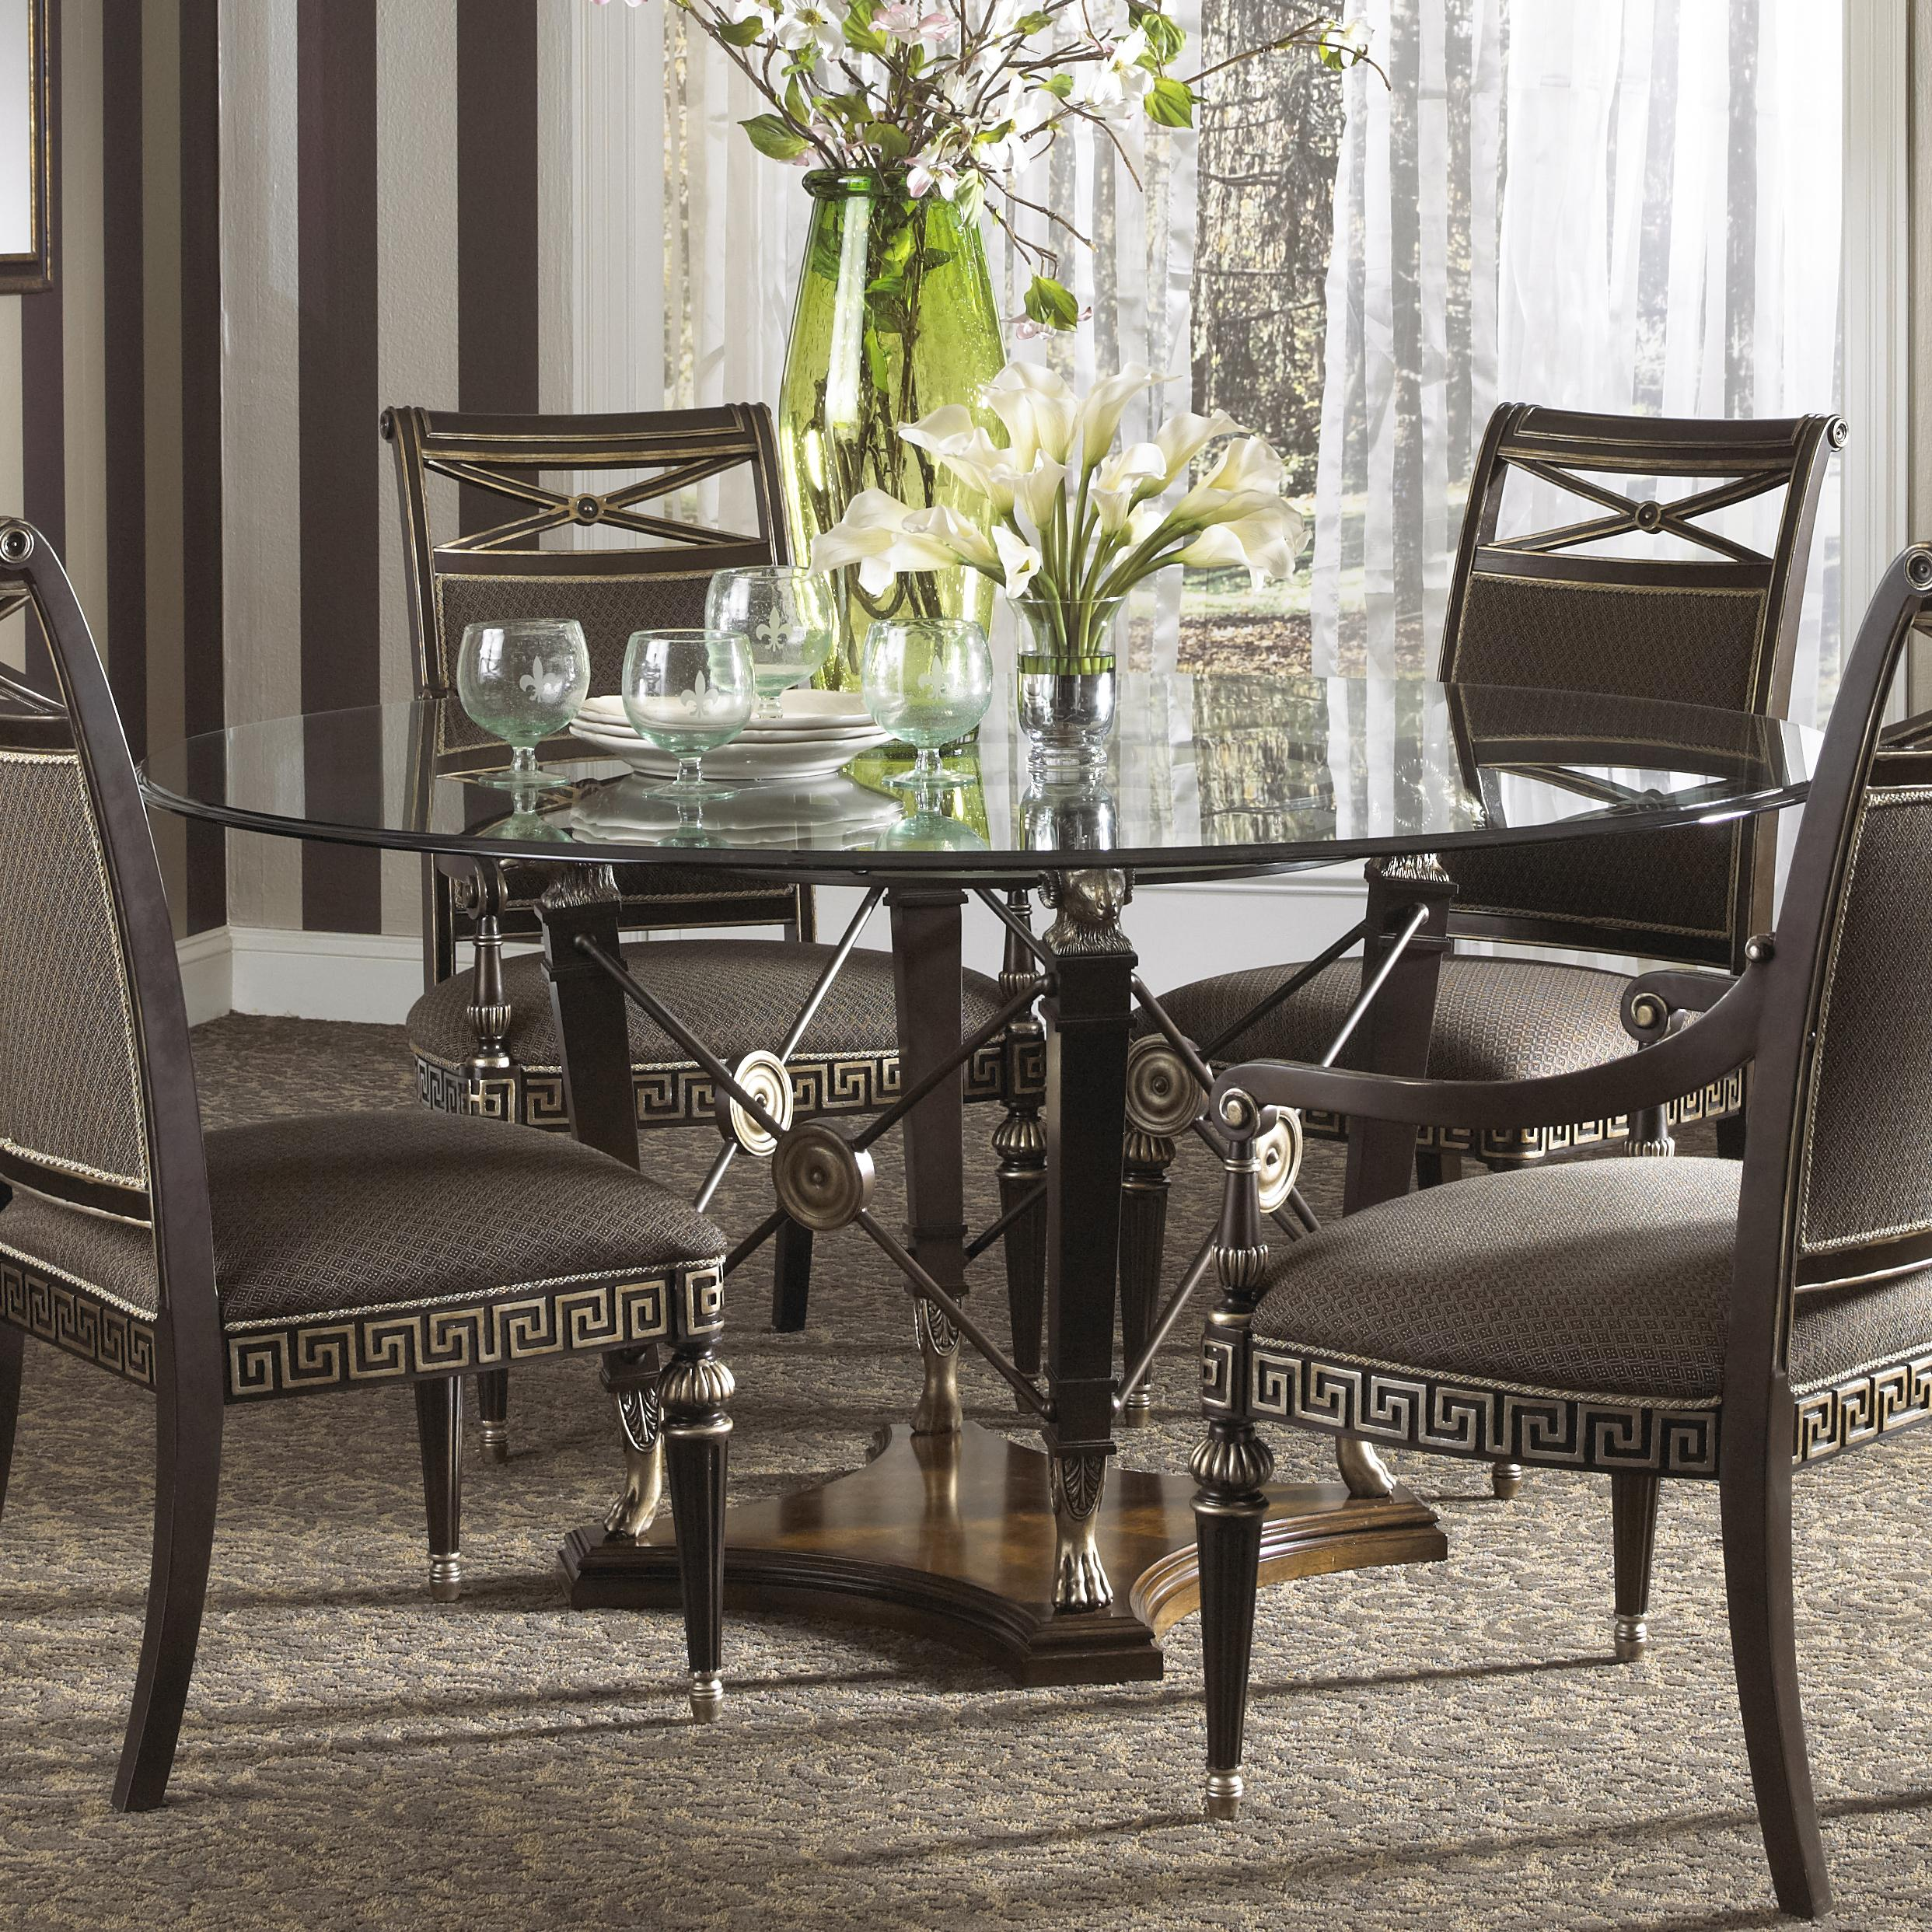 Formal grecian style round dining table with glass top by for Formal dining table